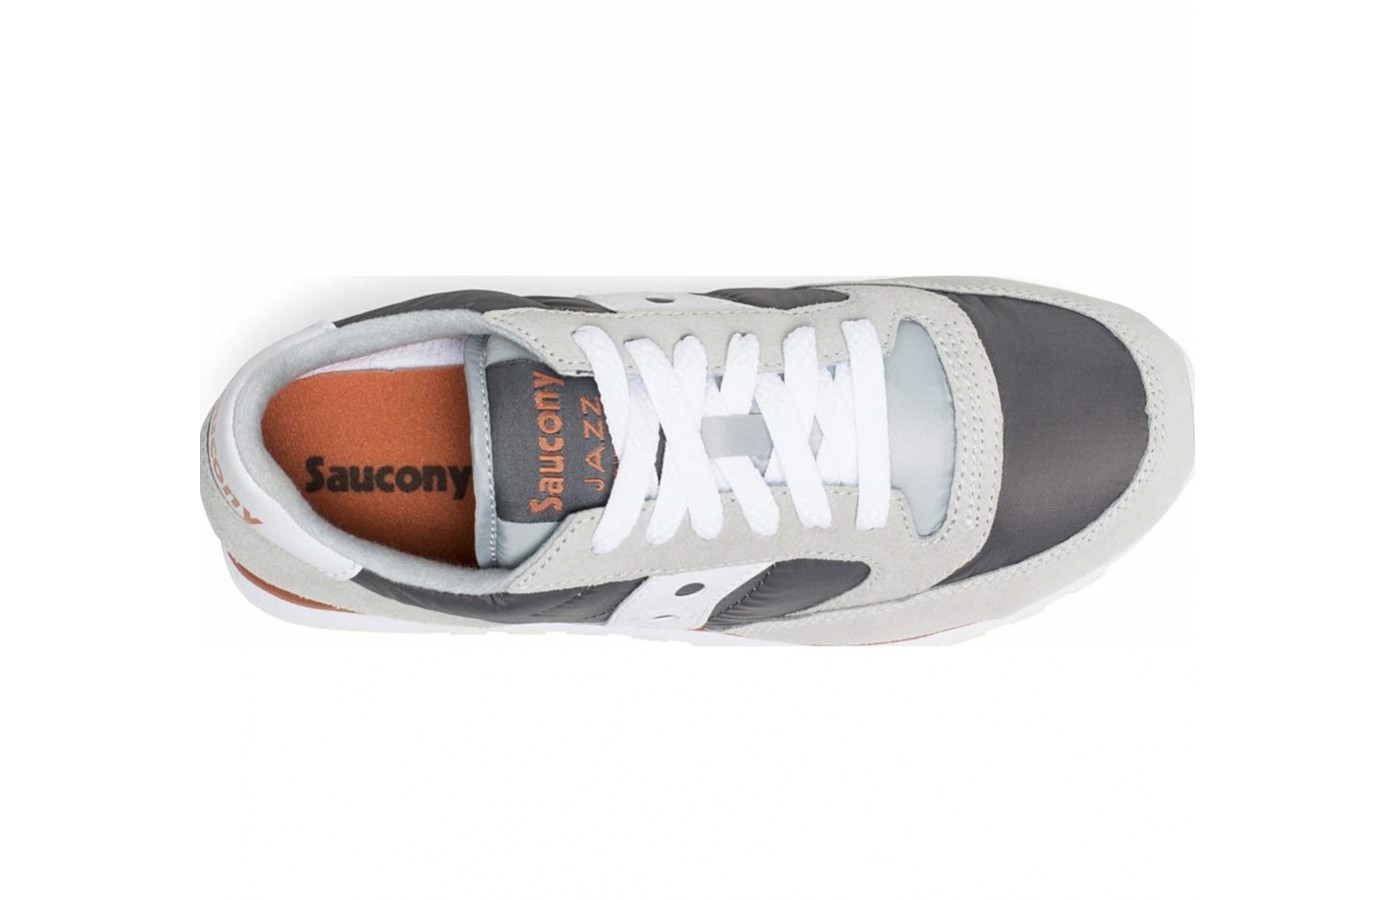 The Saucony Jazz Low Pro offers a padded collar for comfort and to keep debris out of the shoe.